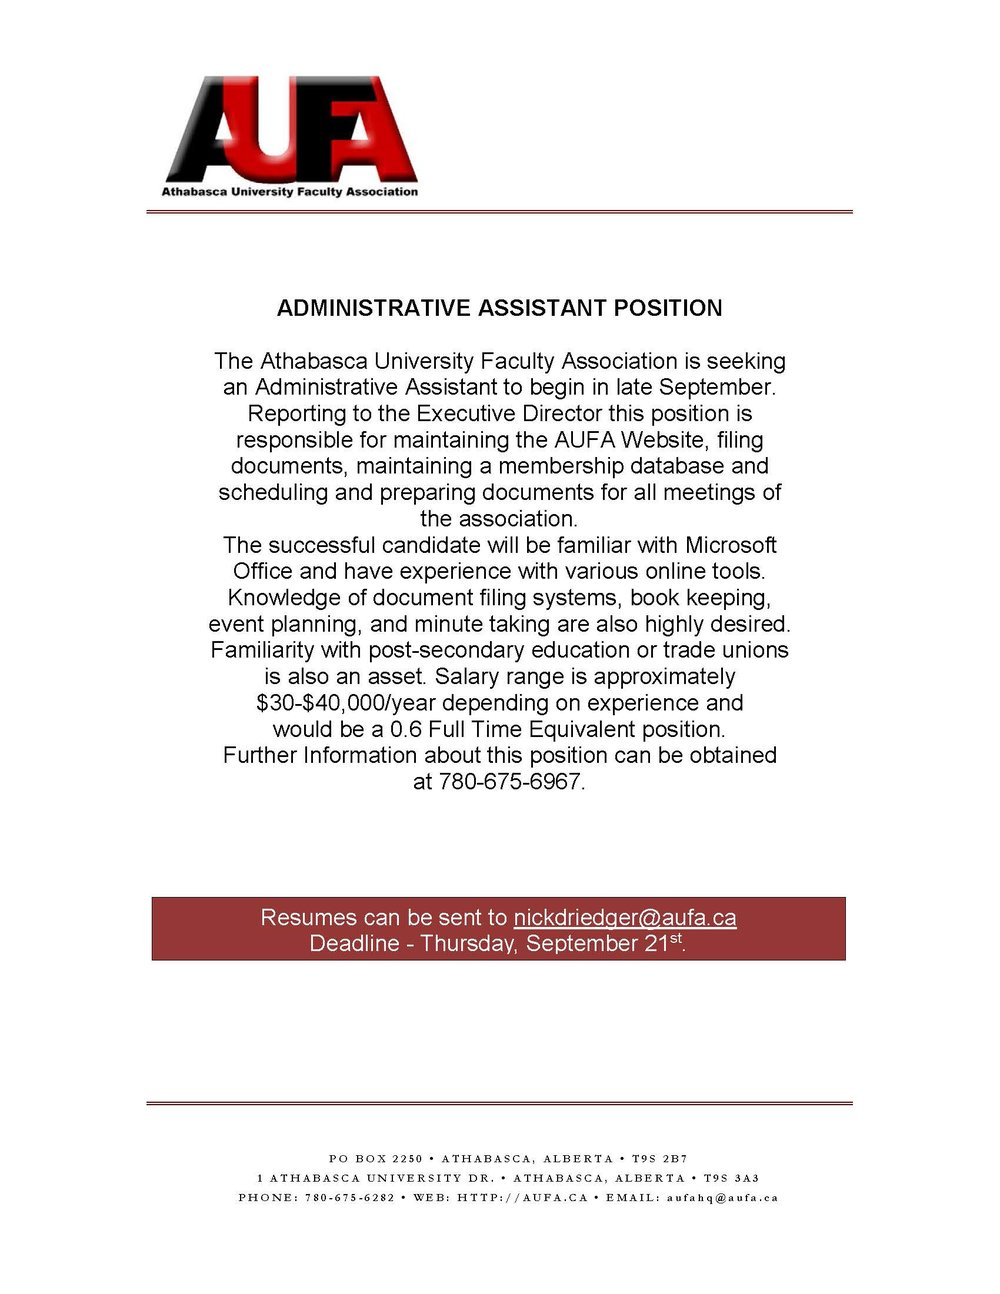 Administratvie Assistant Position - AUFA Website 09.17.jpg